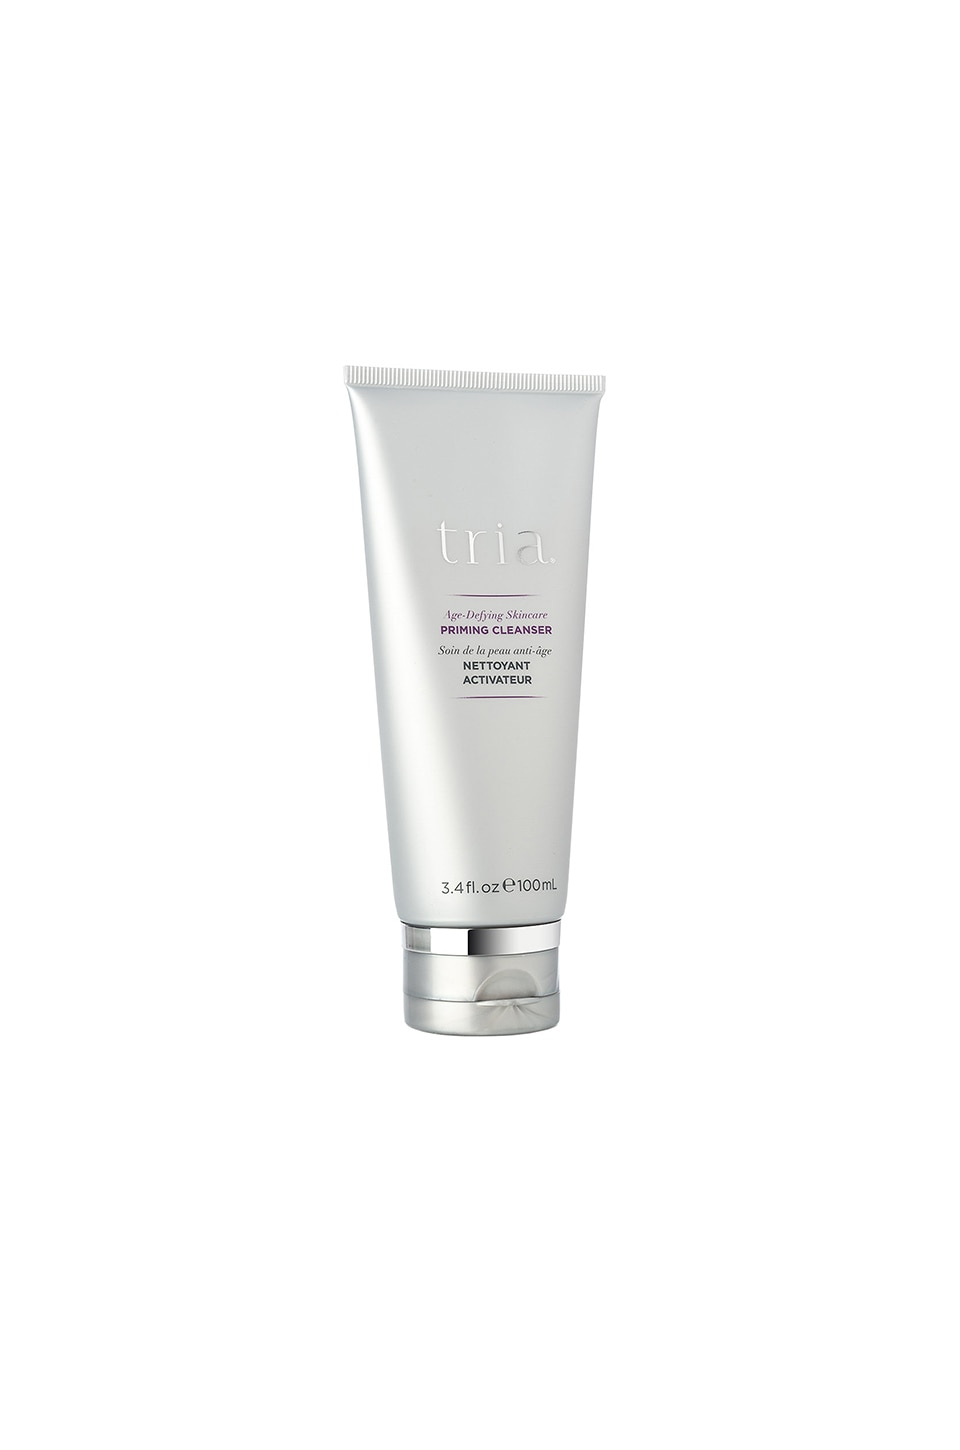 Tria Beauty Priming Cleanser with Willow Bark Extract